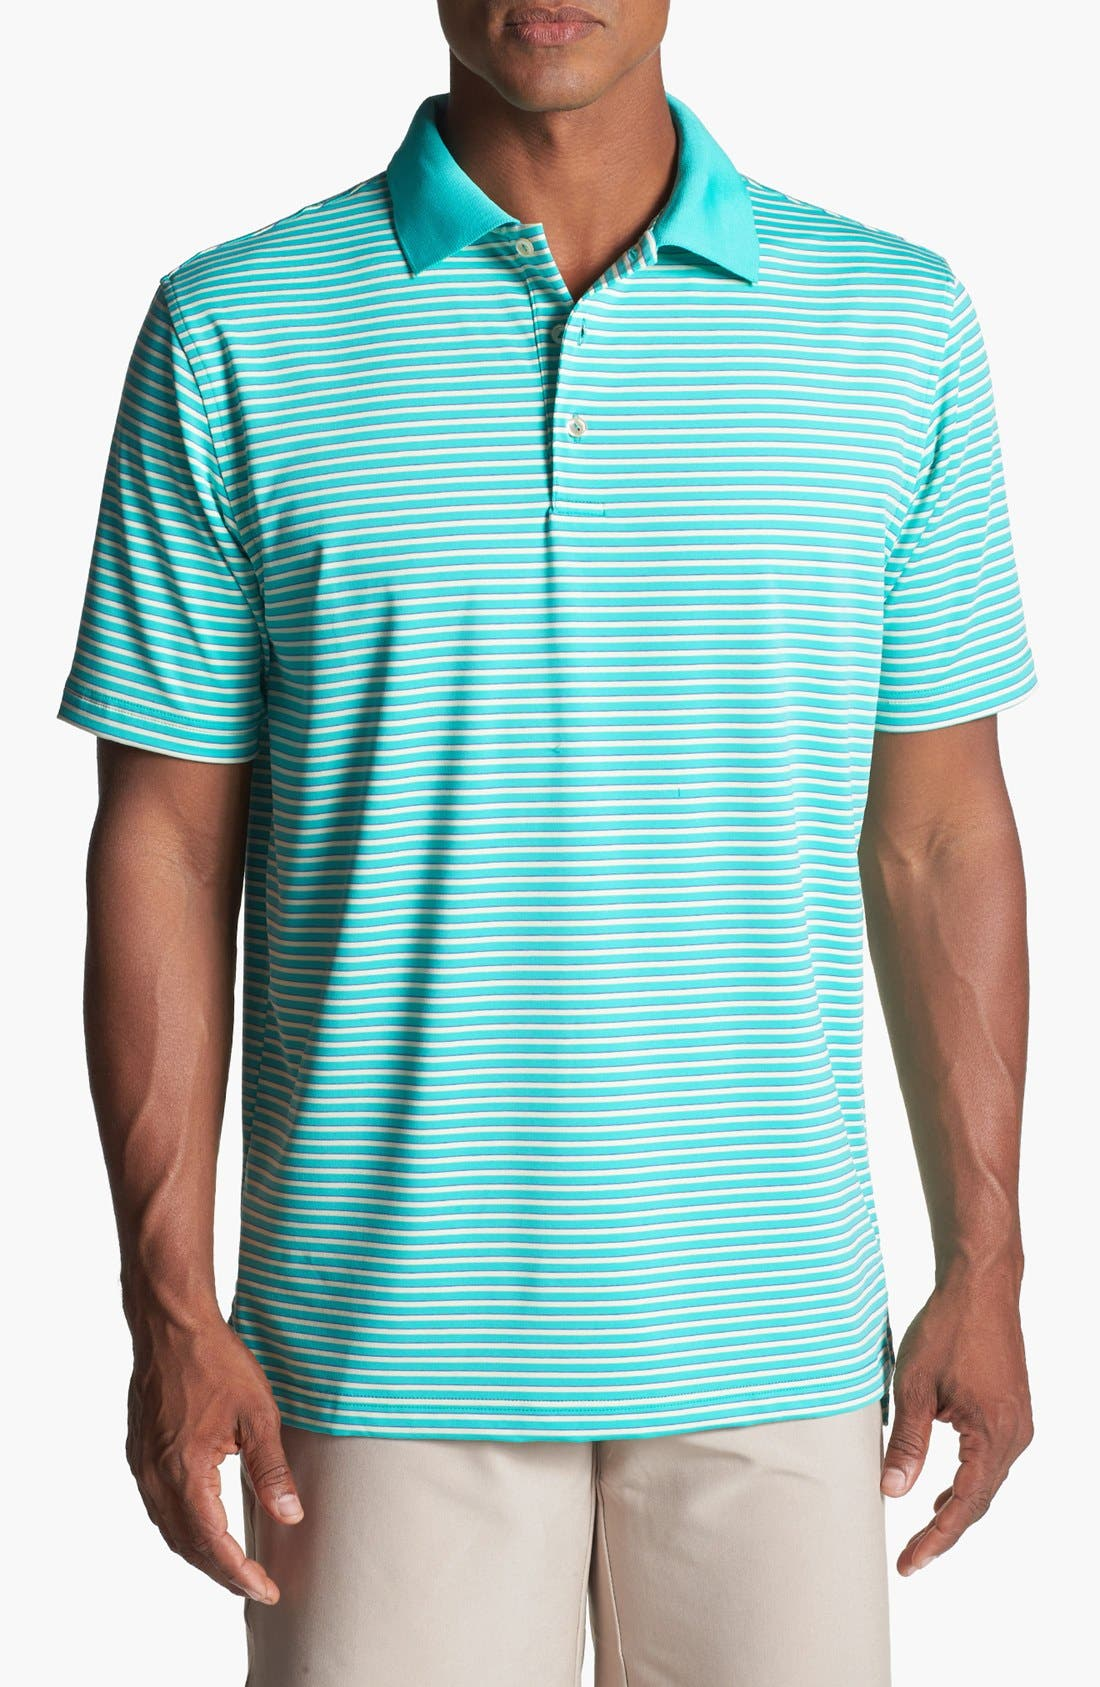 Alternate Image 1 Selected - Peter Millar Stripe Performance Polo